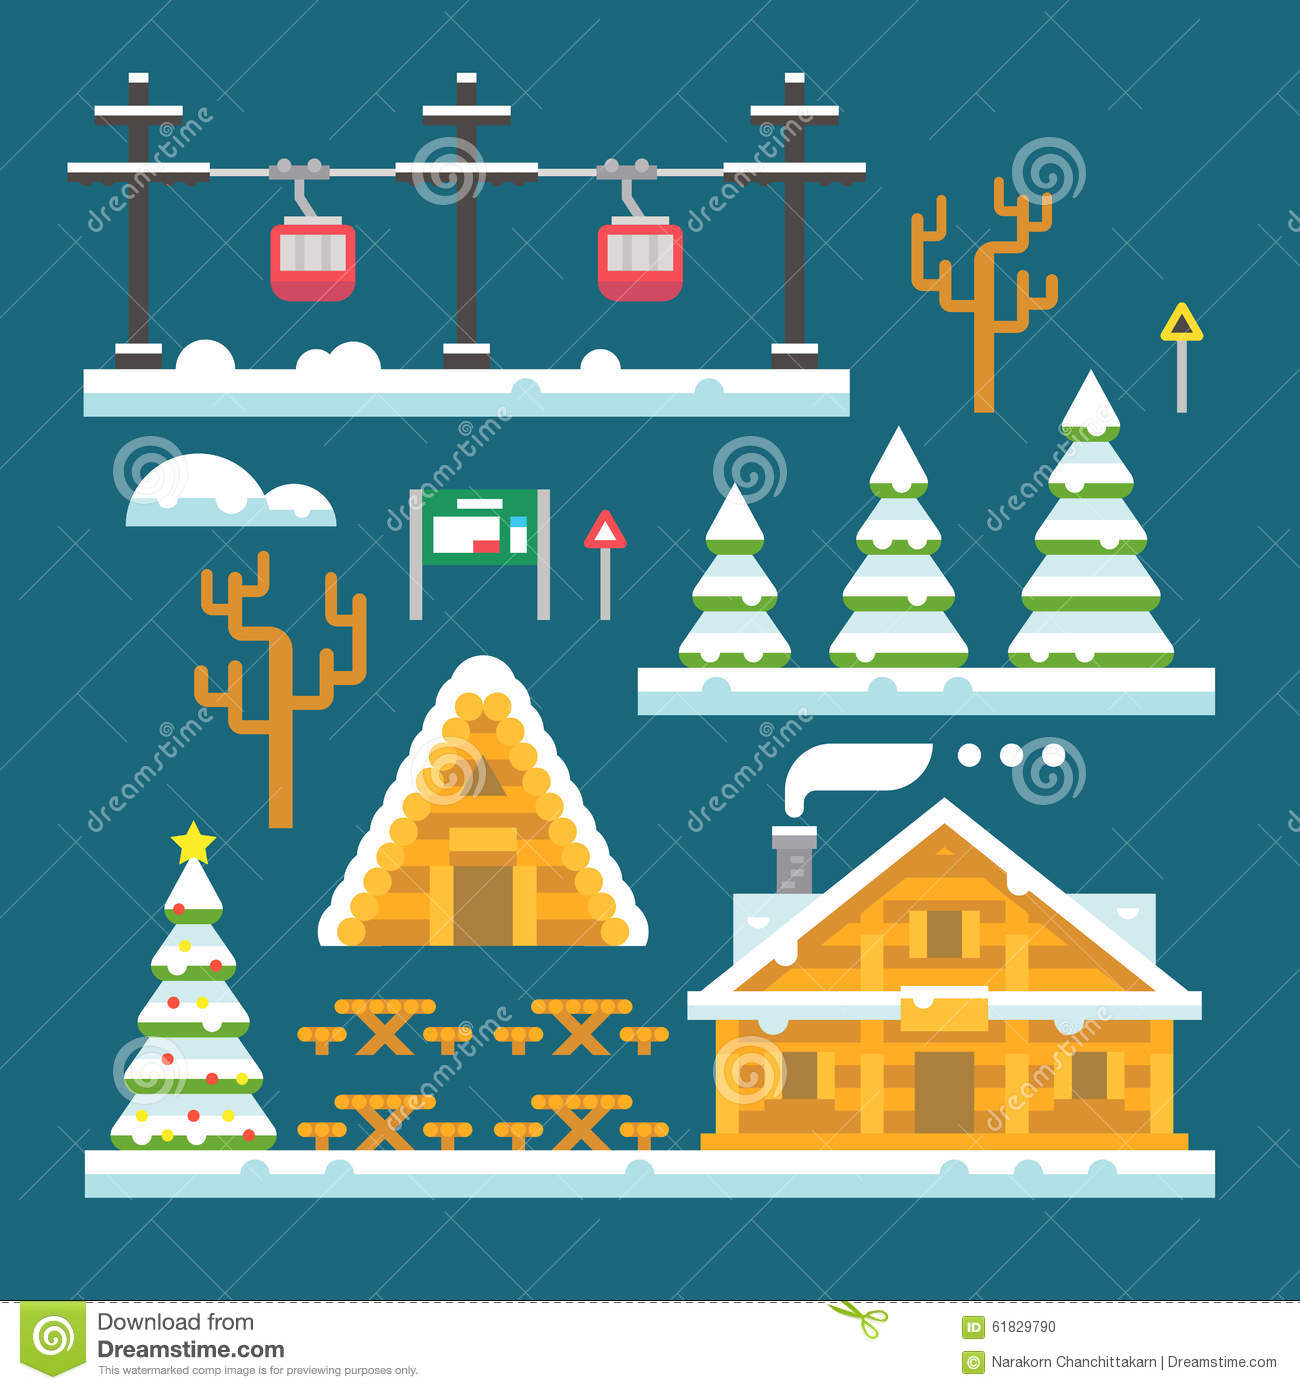 Winter ski resort flat design stock illustration image for Ski design hotel